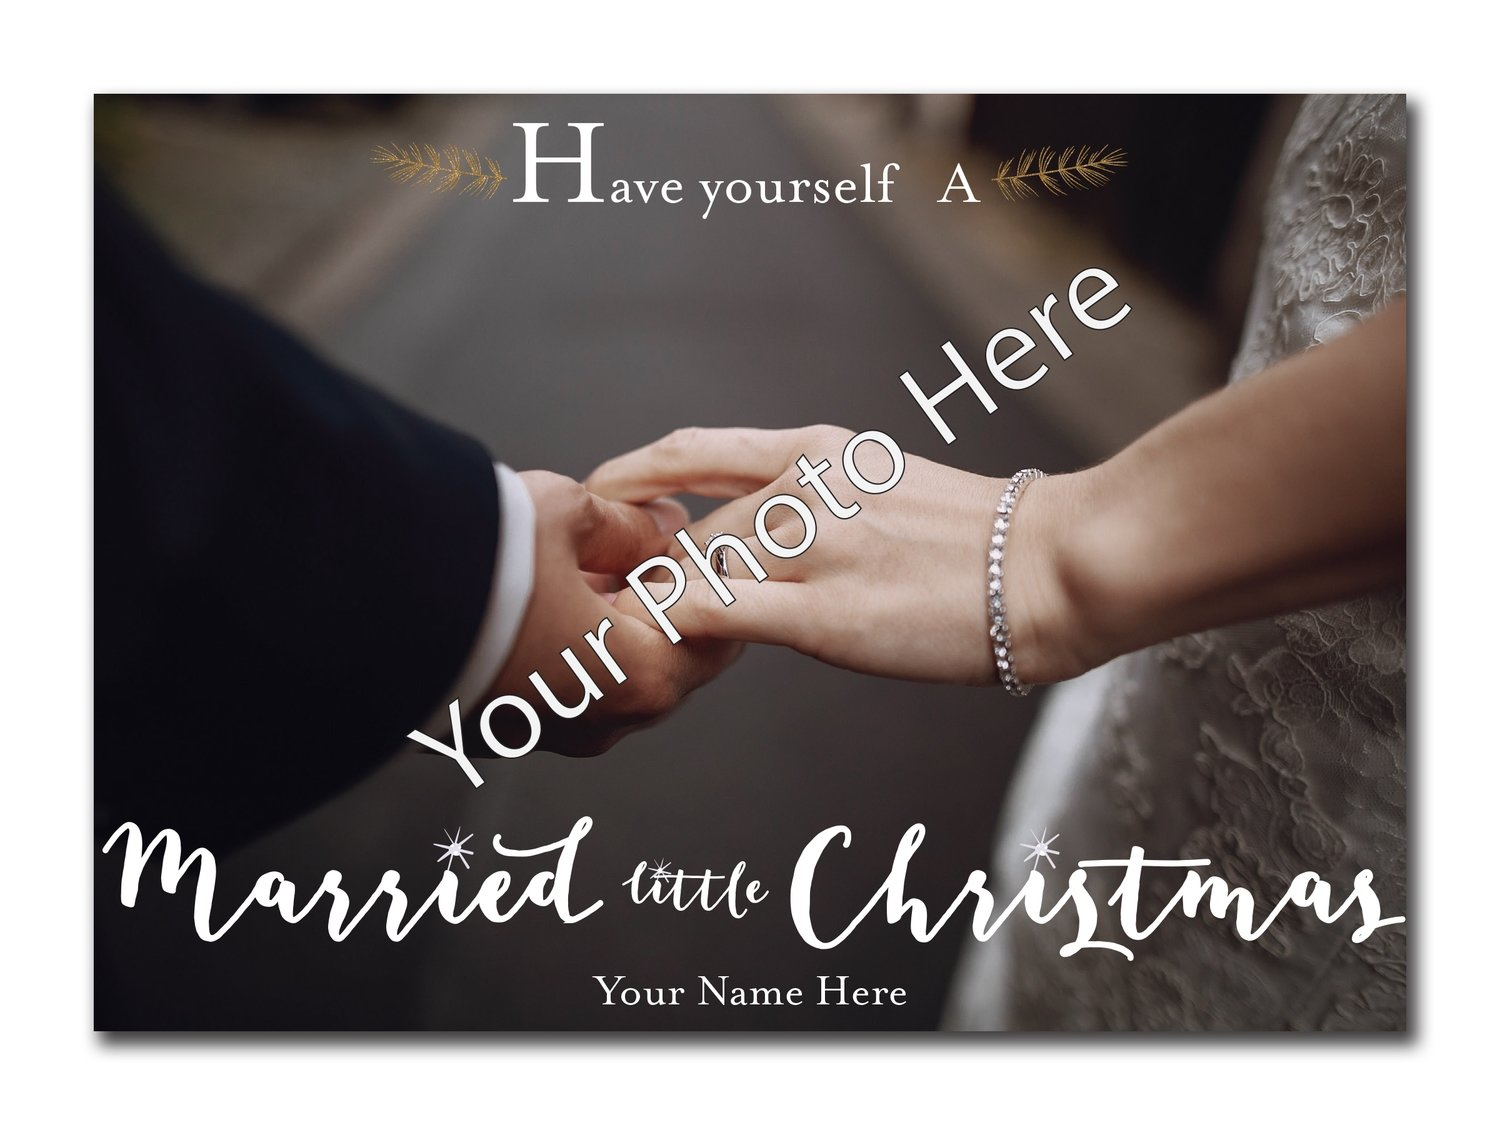 Married Little Christimas 5x7